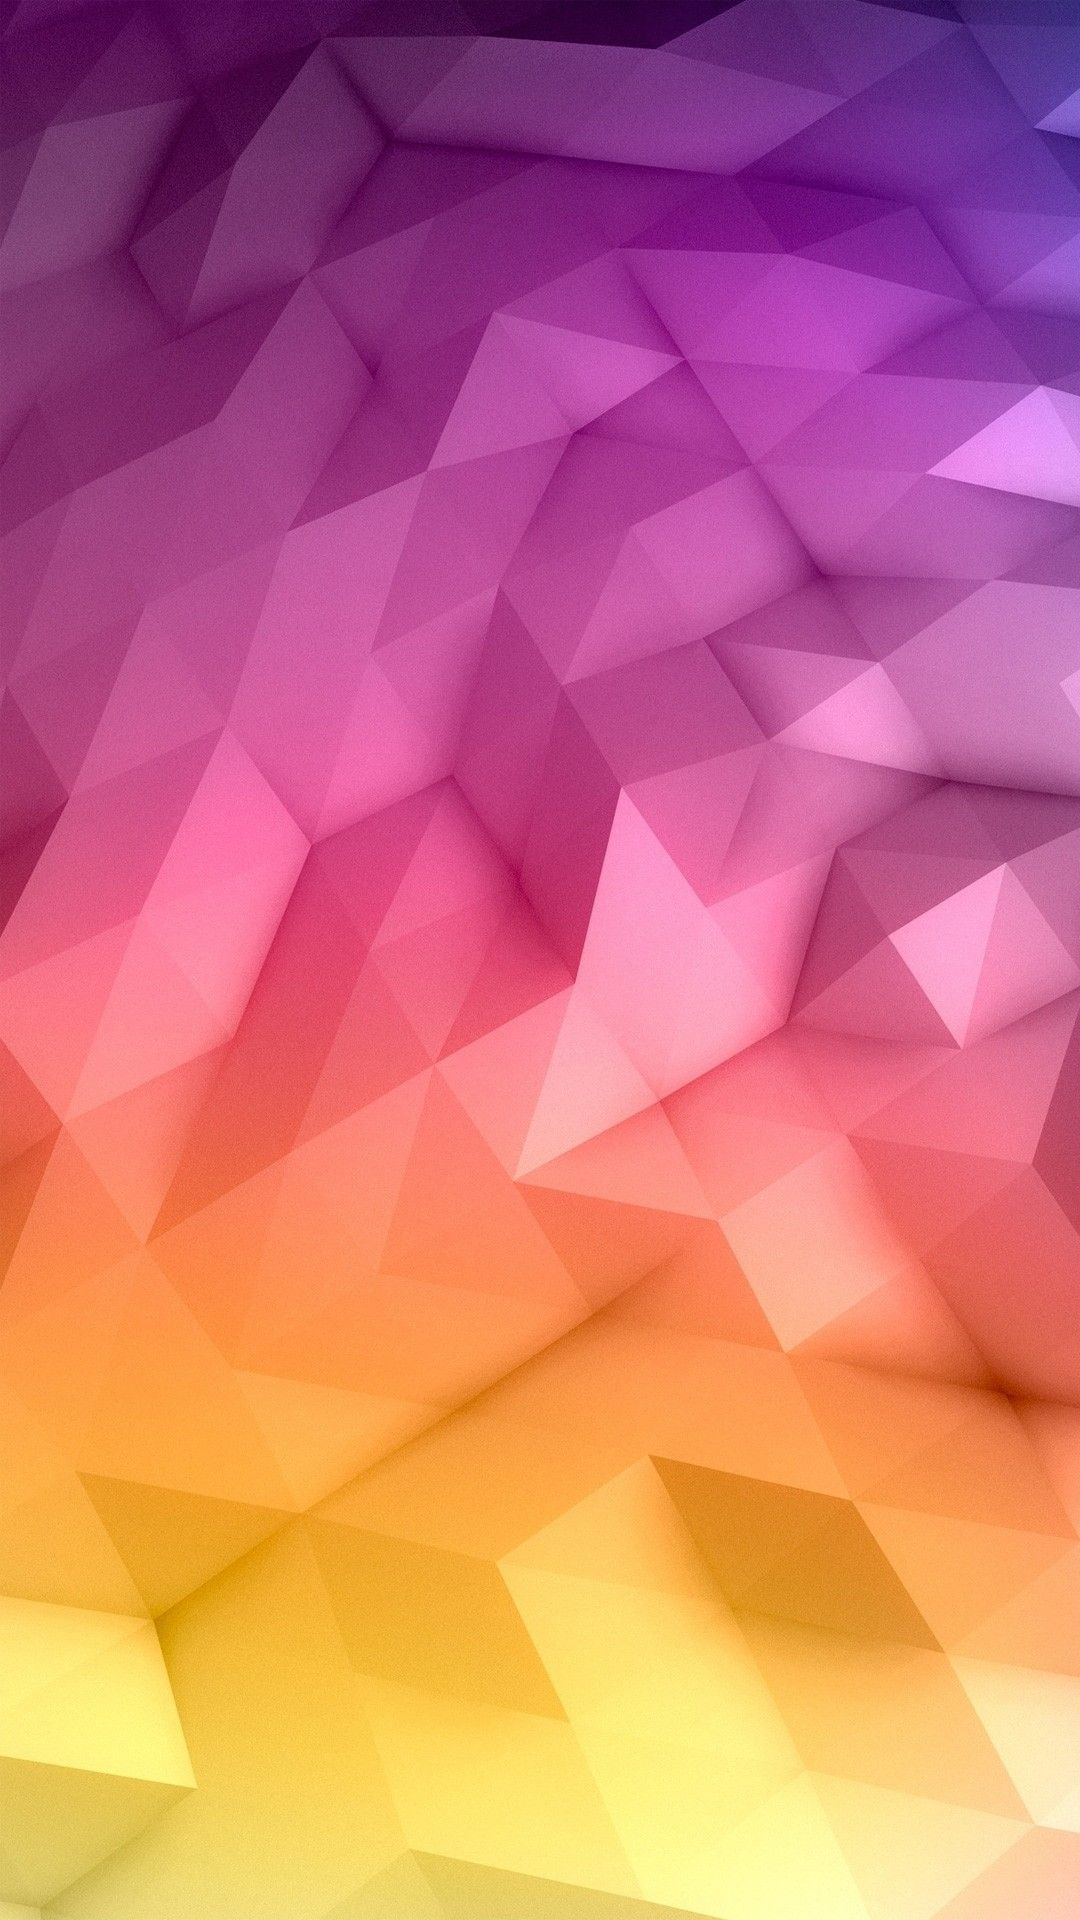 abstract polygonal colorful background - photo #7